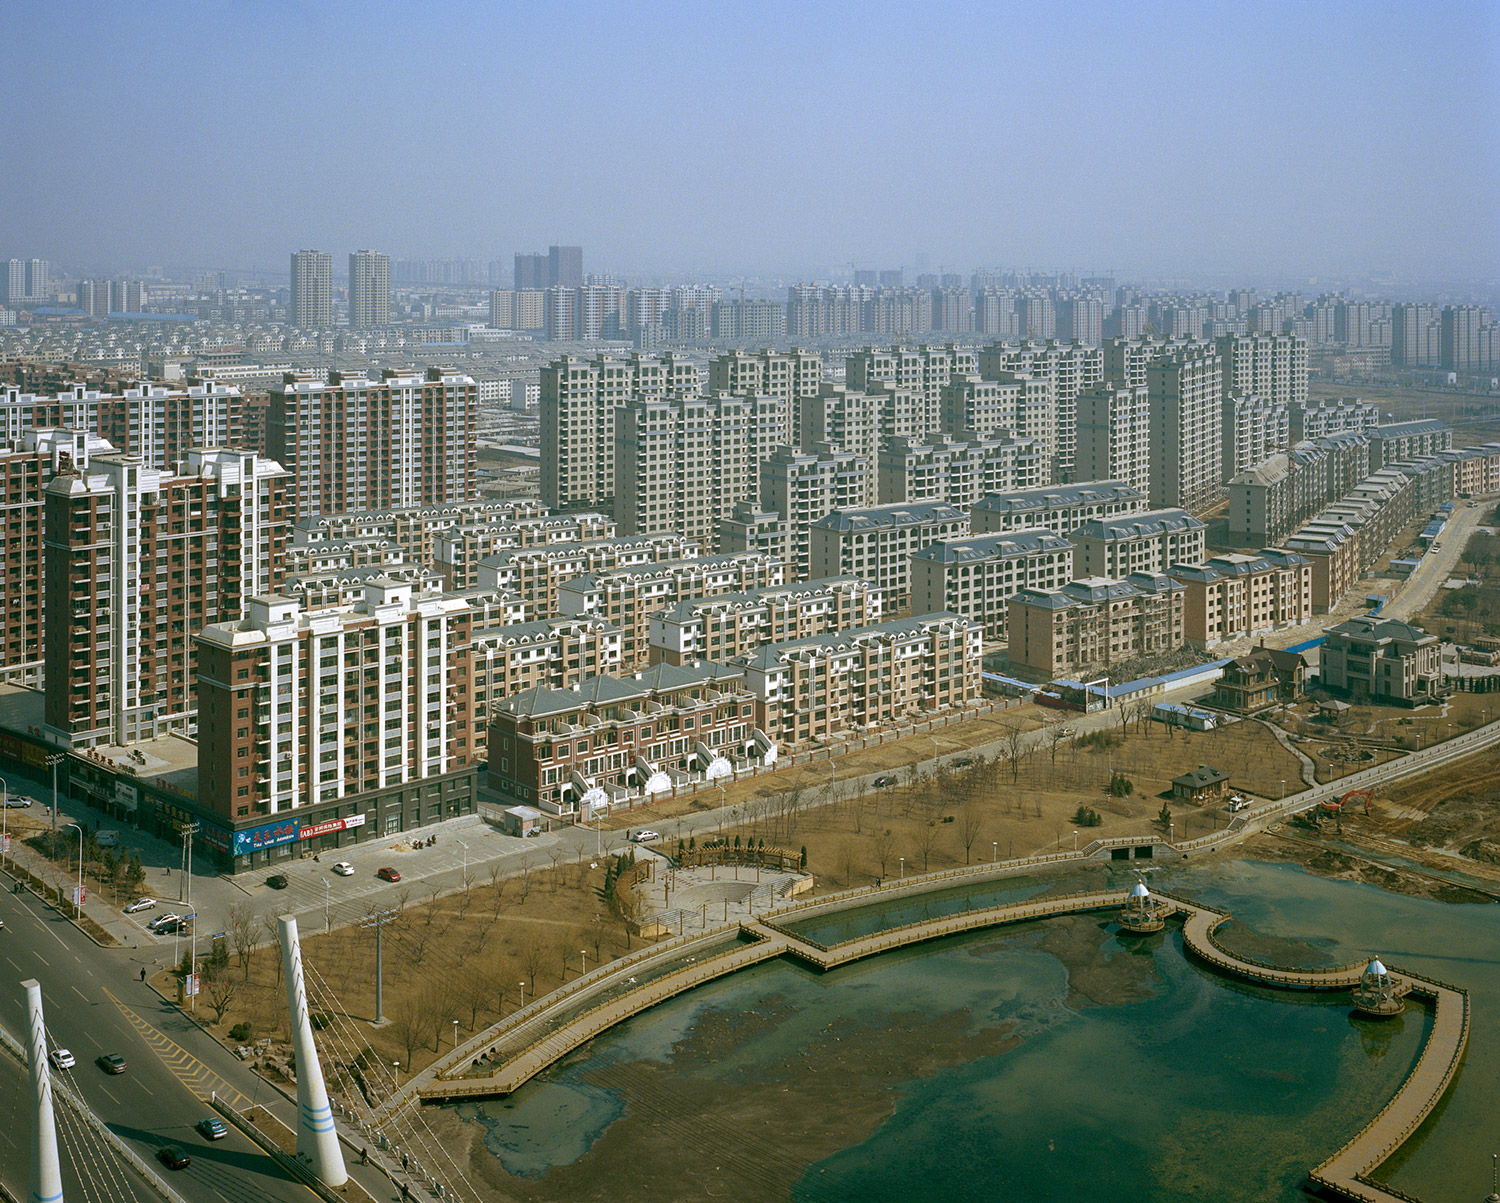 The Yingkou new district city scape